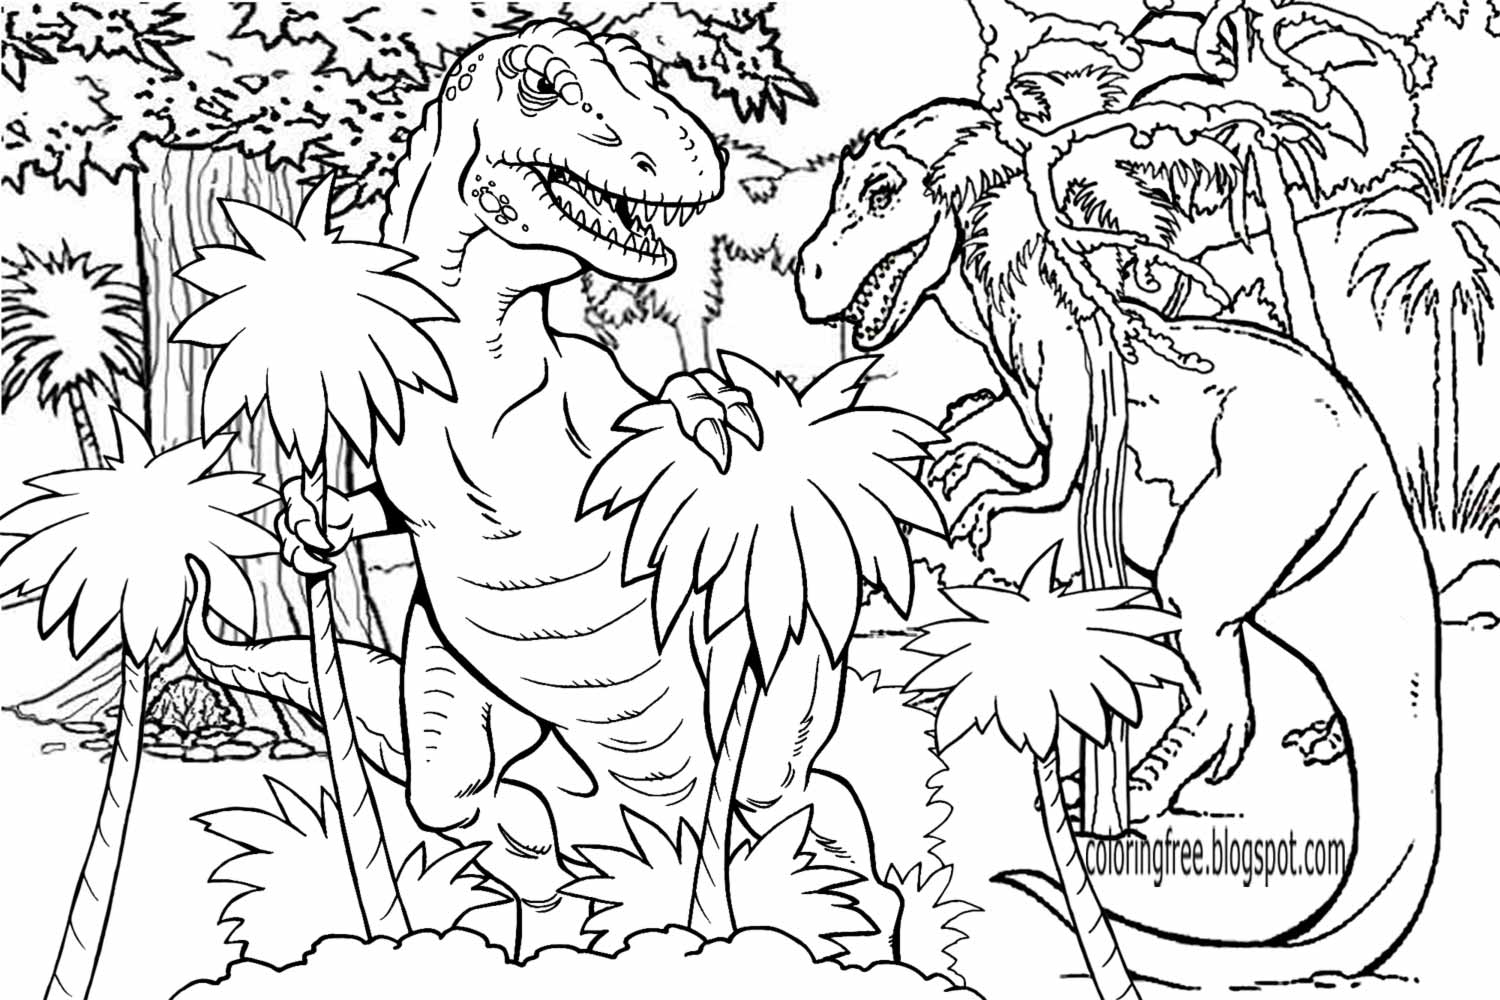 coloring dinosaurs baby dinosaur coloring pages to download and print for free dinosaurs coloring